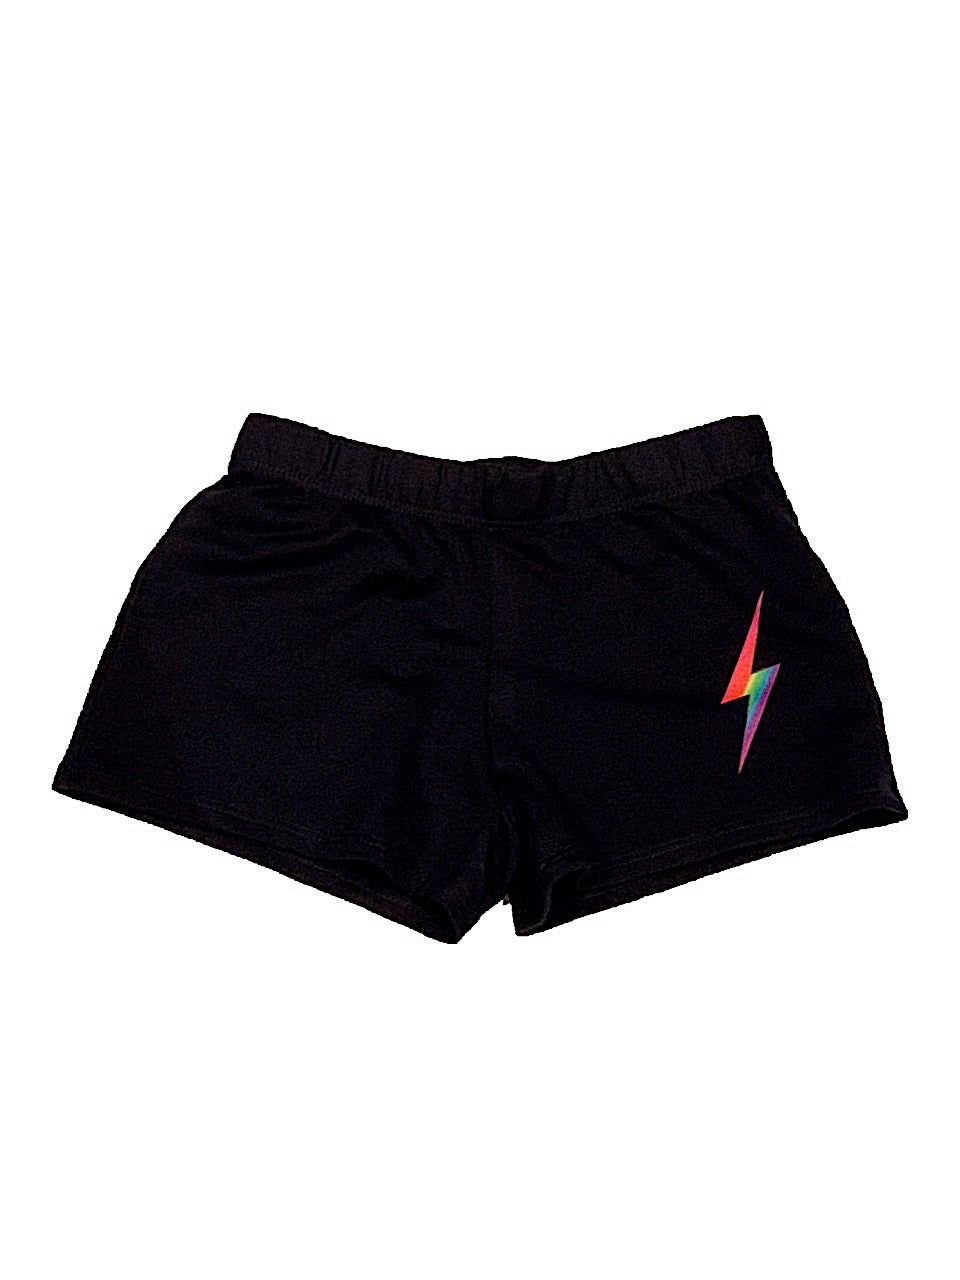 Firehouse Black Shorts With Neon Bolt